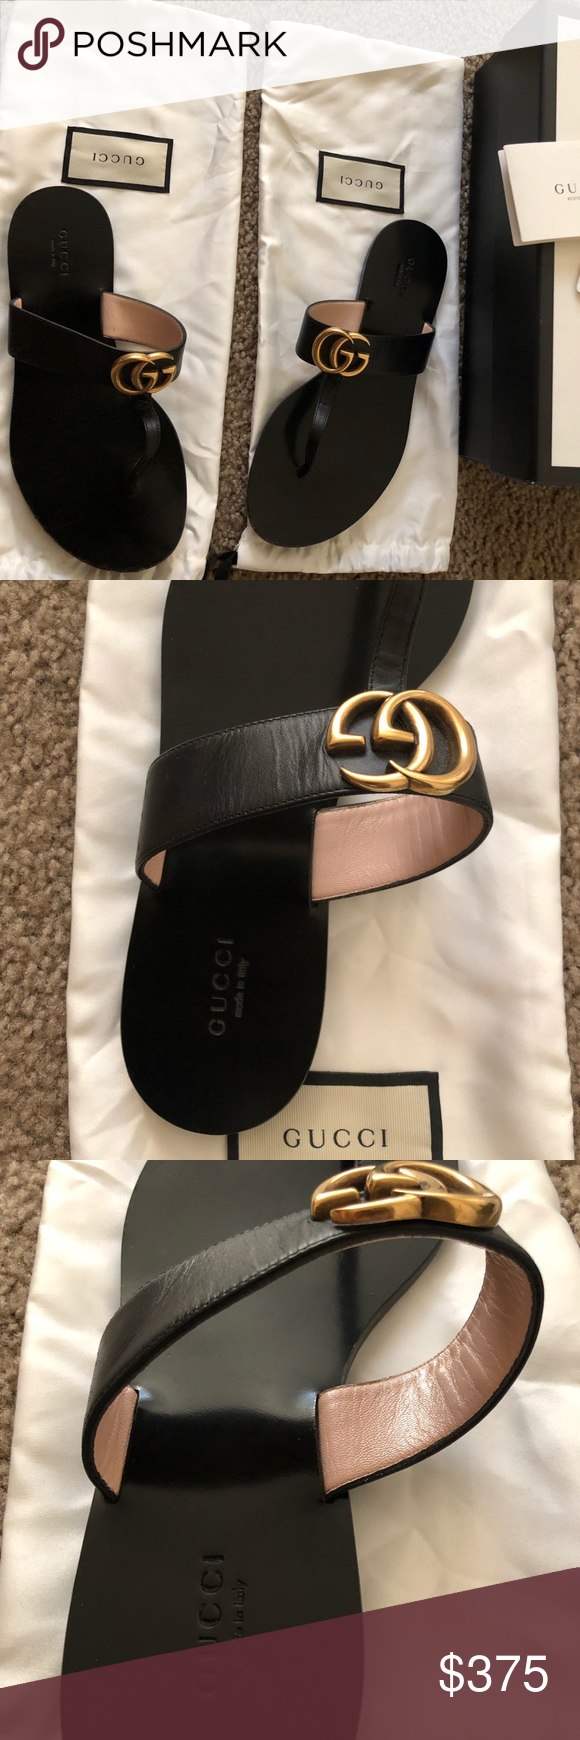 c5118958bf3 Gucci Leather Sandals Leather thong sandal with Double G Women size ...